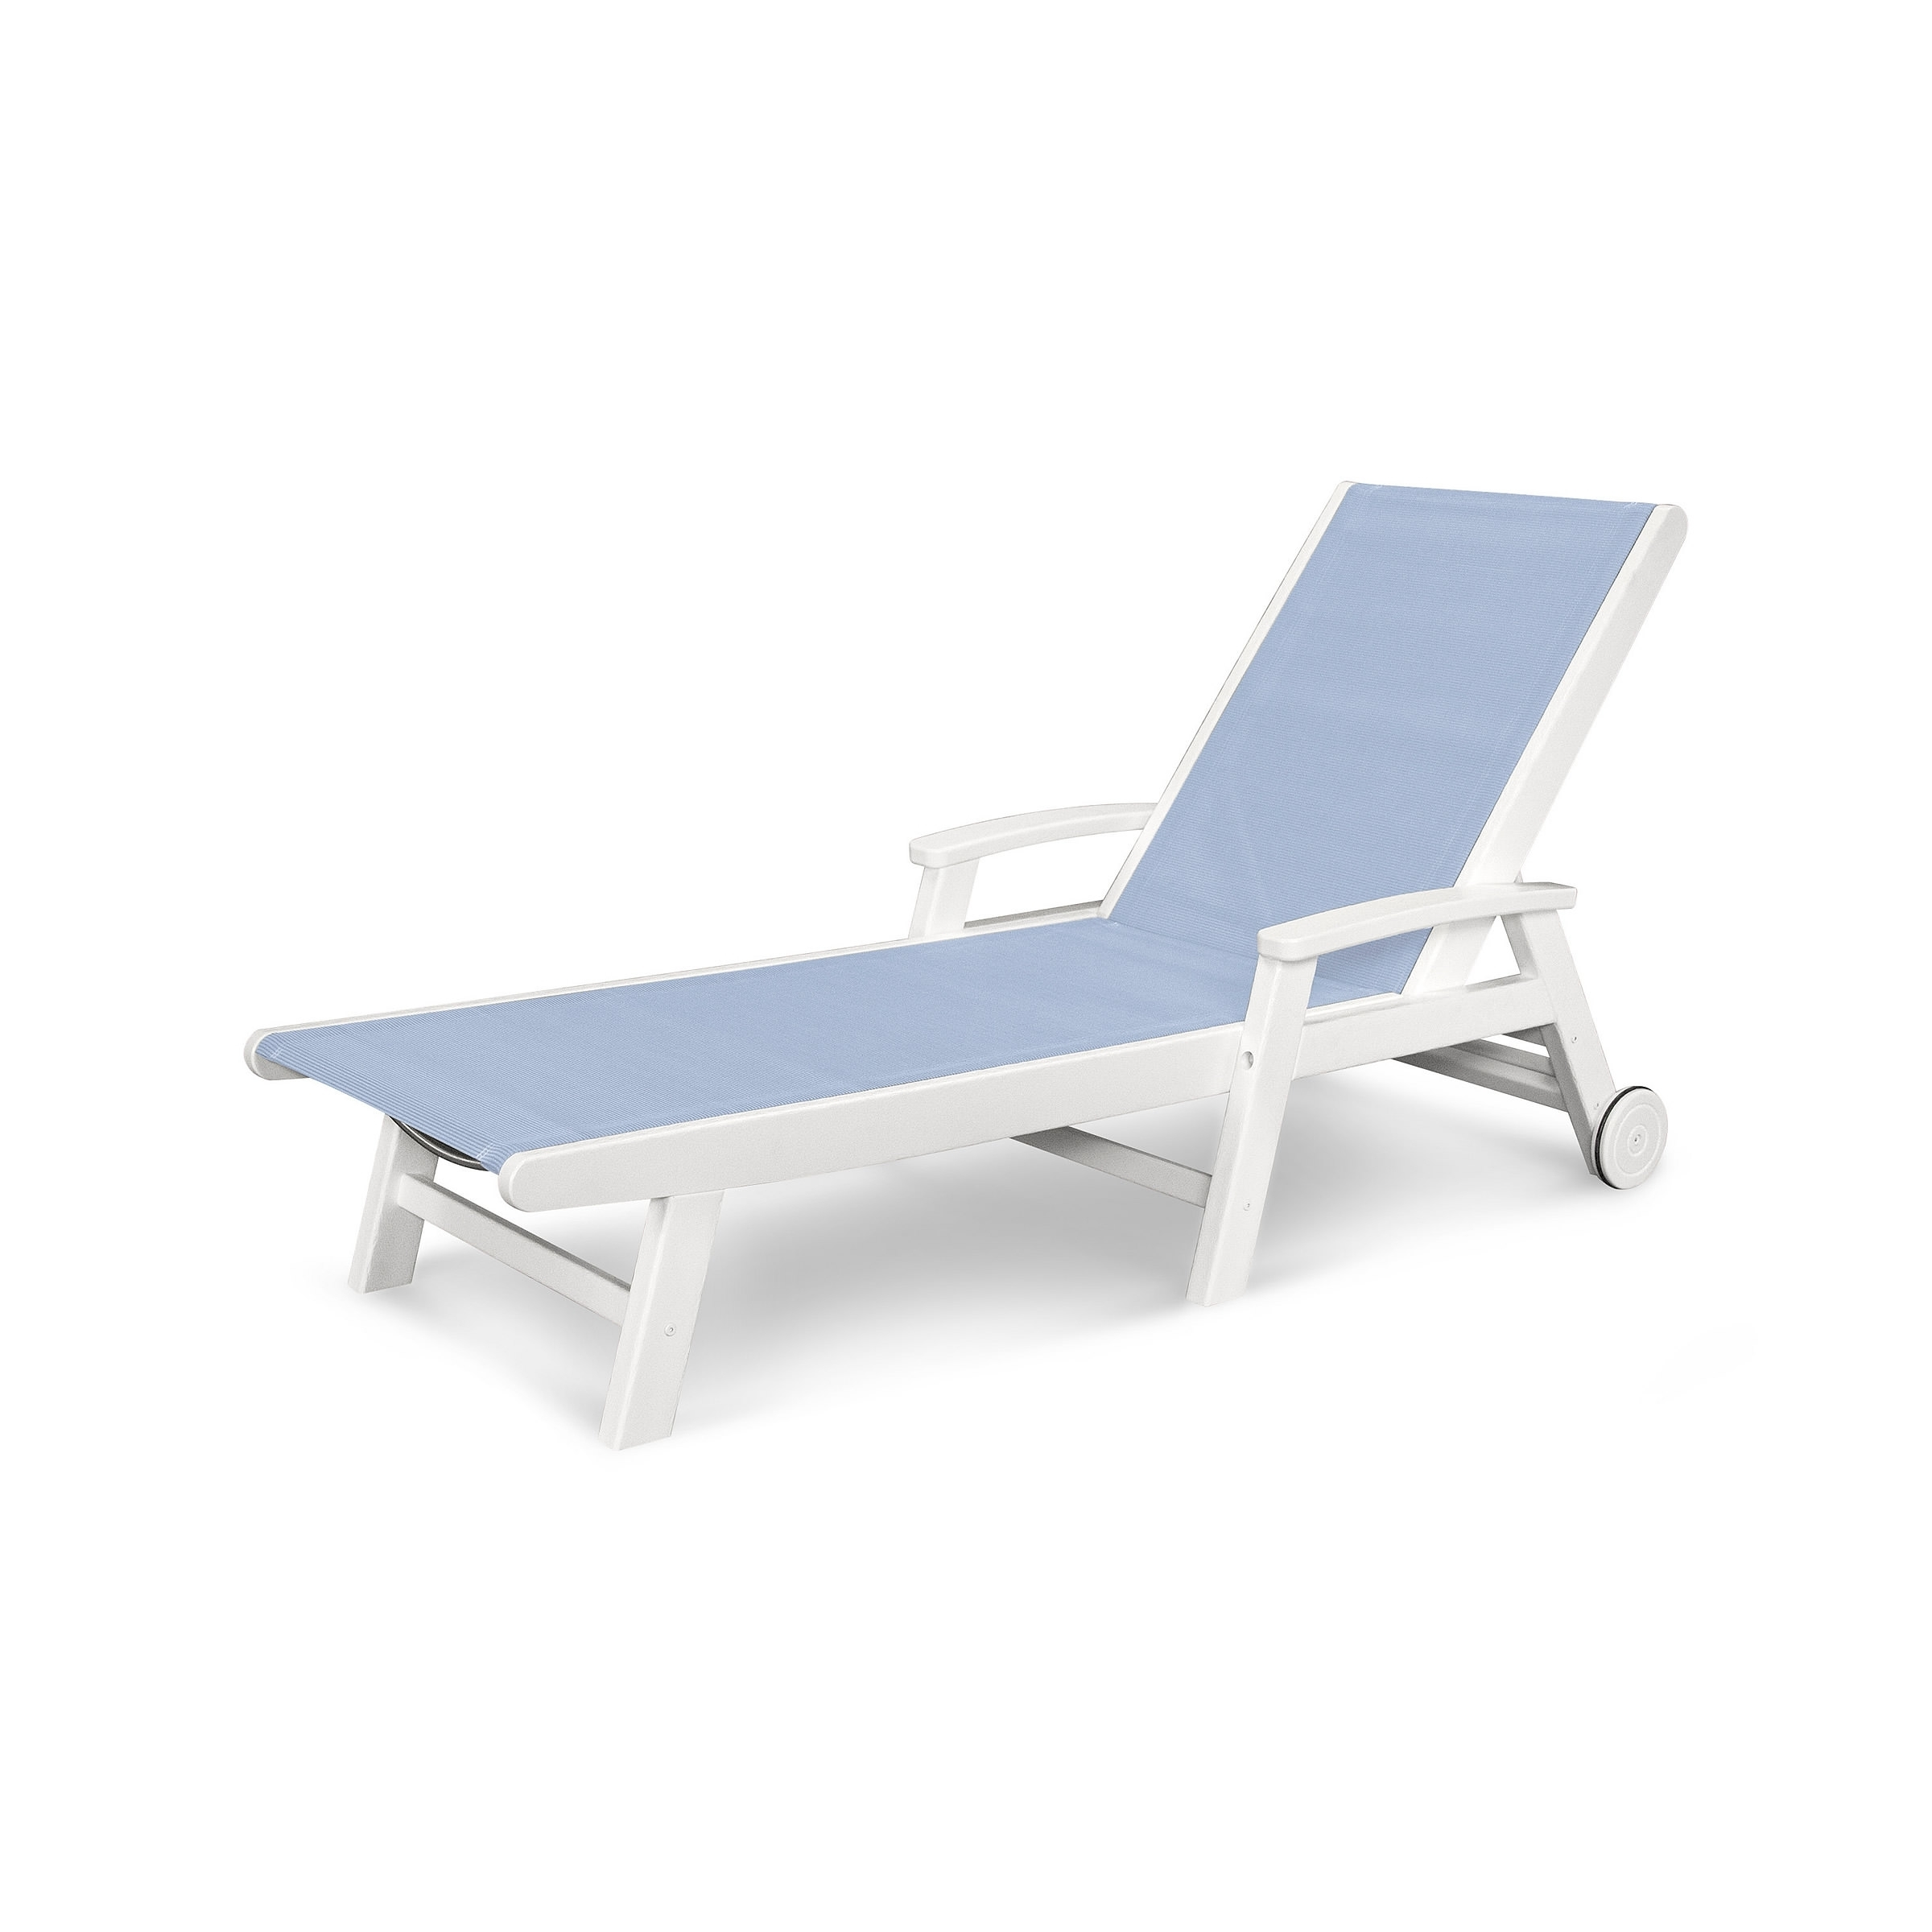 Outdoor Chaise Lounges For Polywood Chaise Lounges (View 5 of 15)